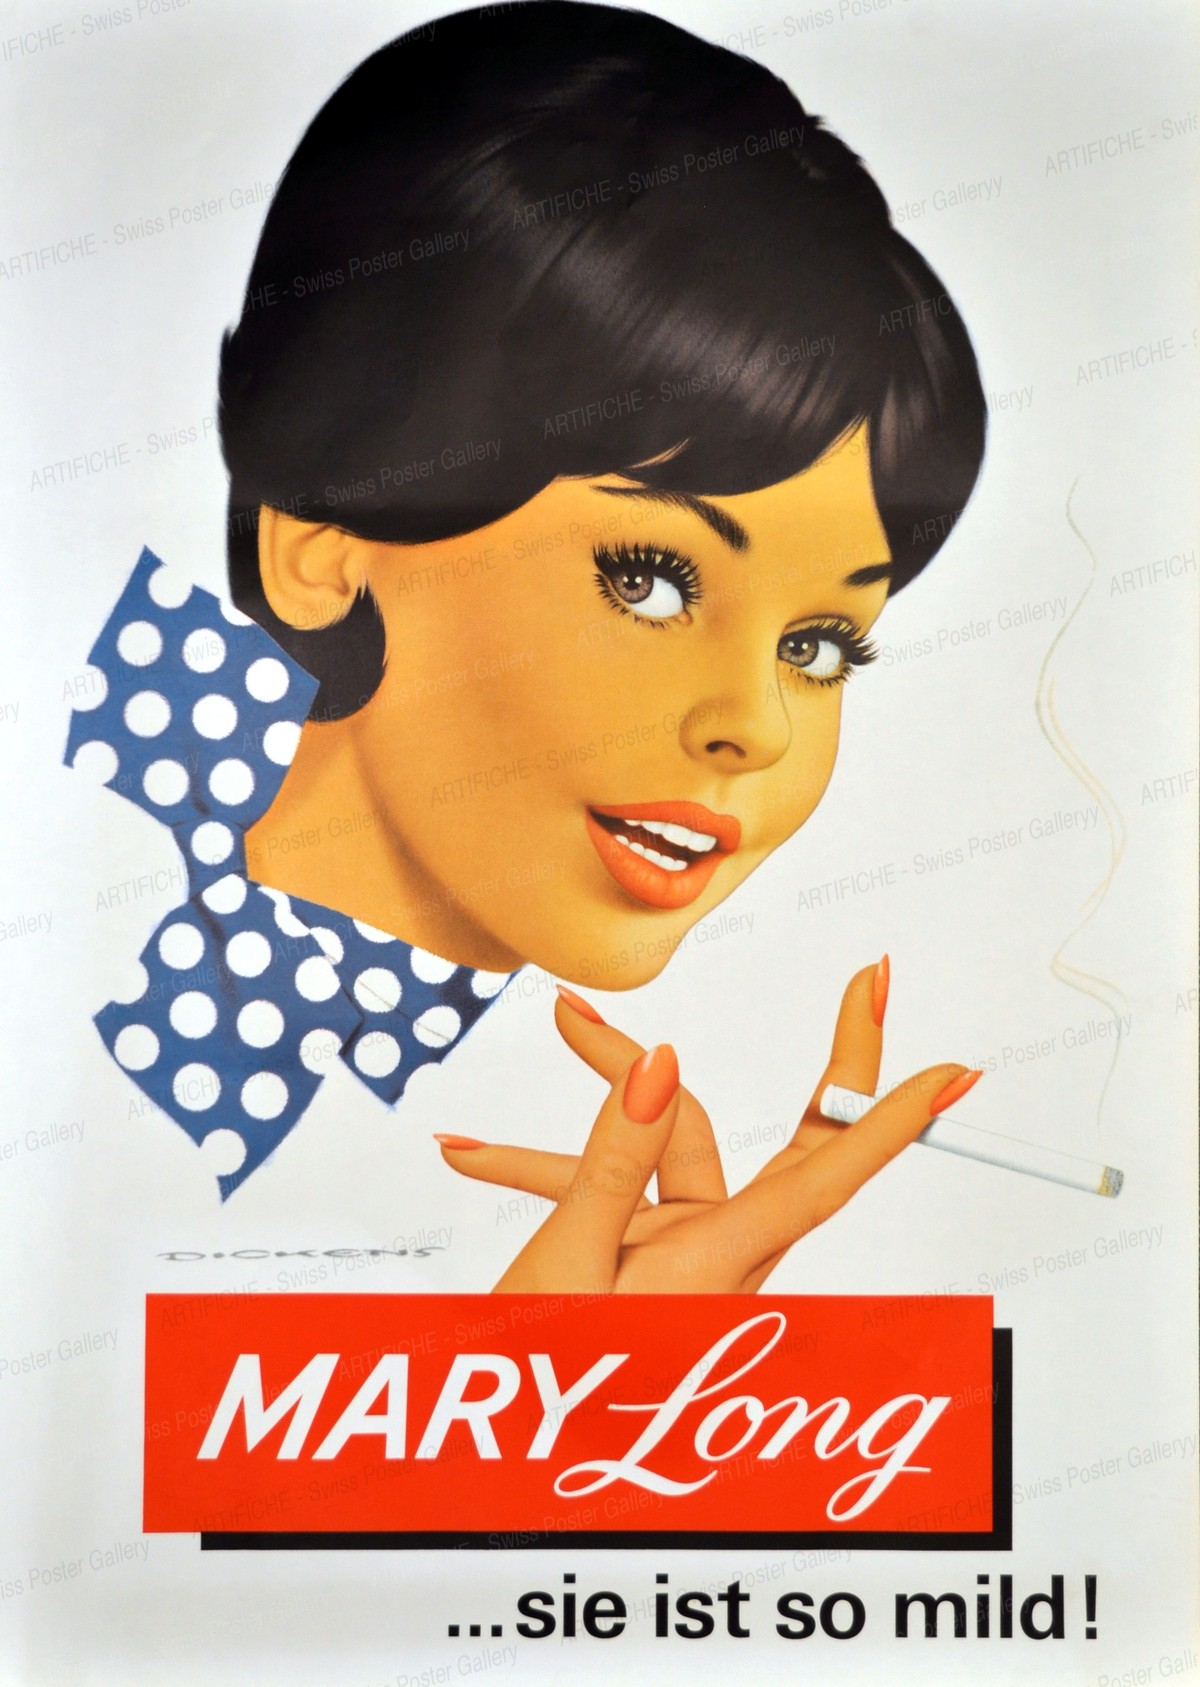 MARY Long – sie ist so mild!, Archie Dickens